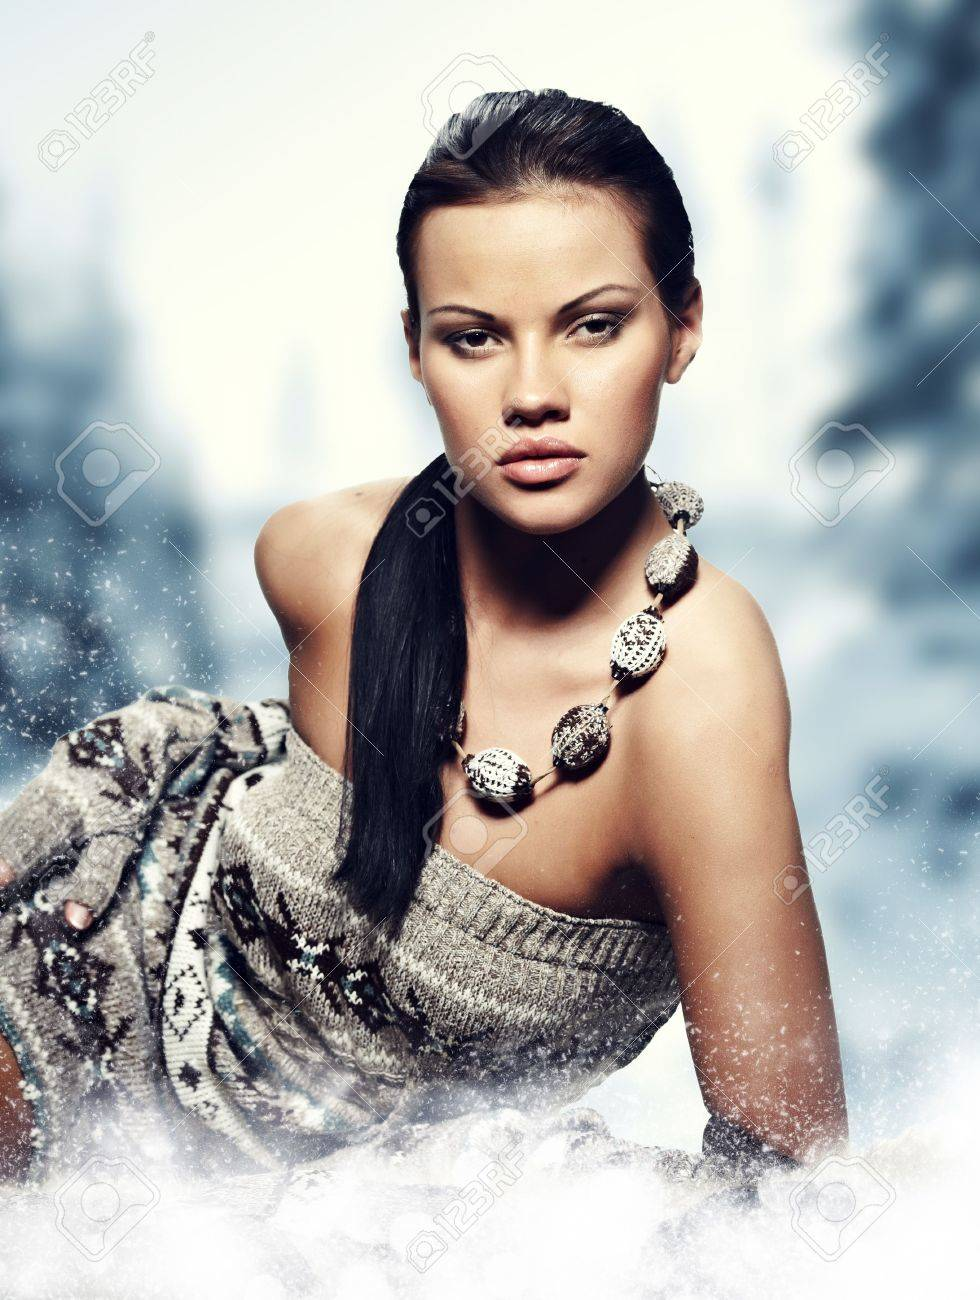 Winter wild woman on snow Stock Photo - 8587317